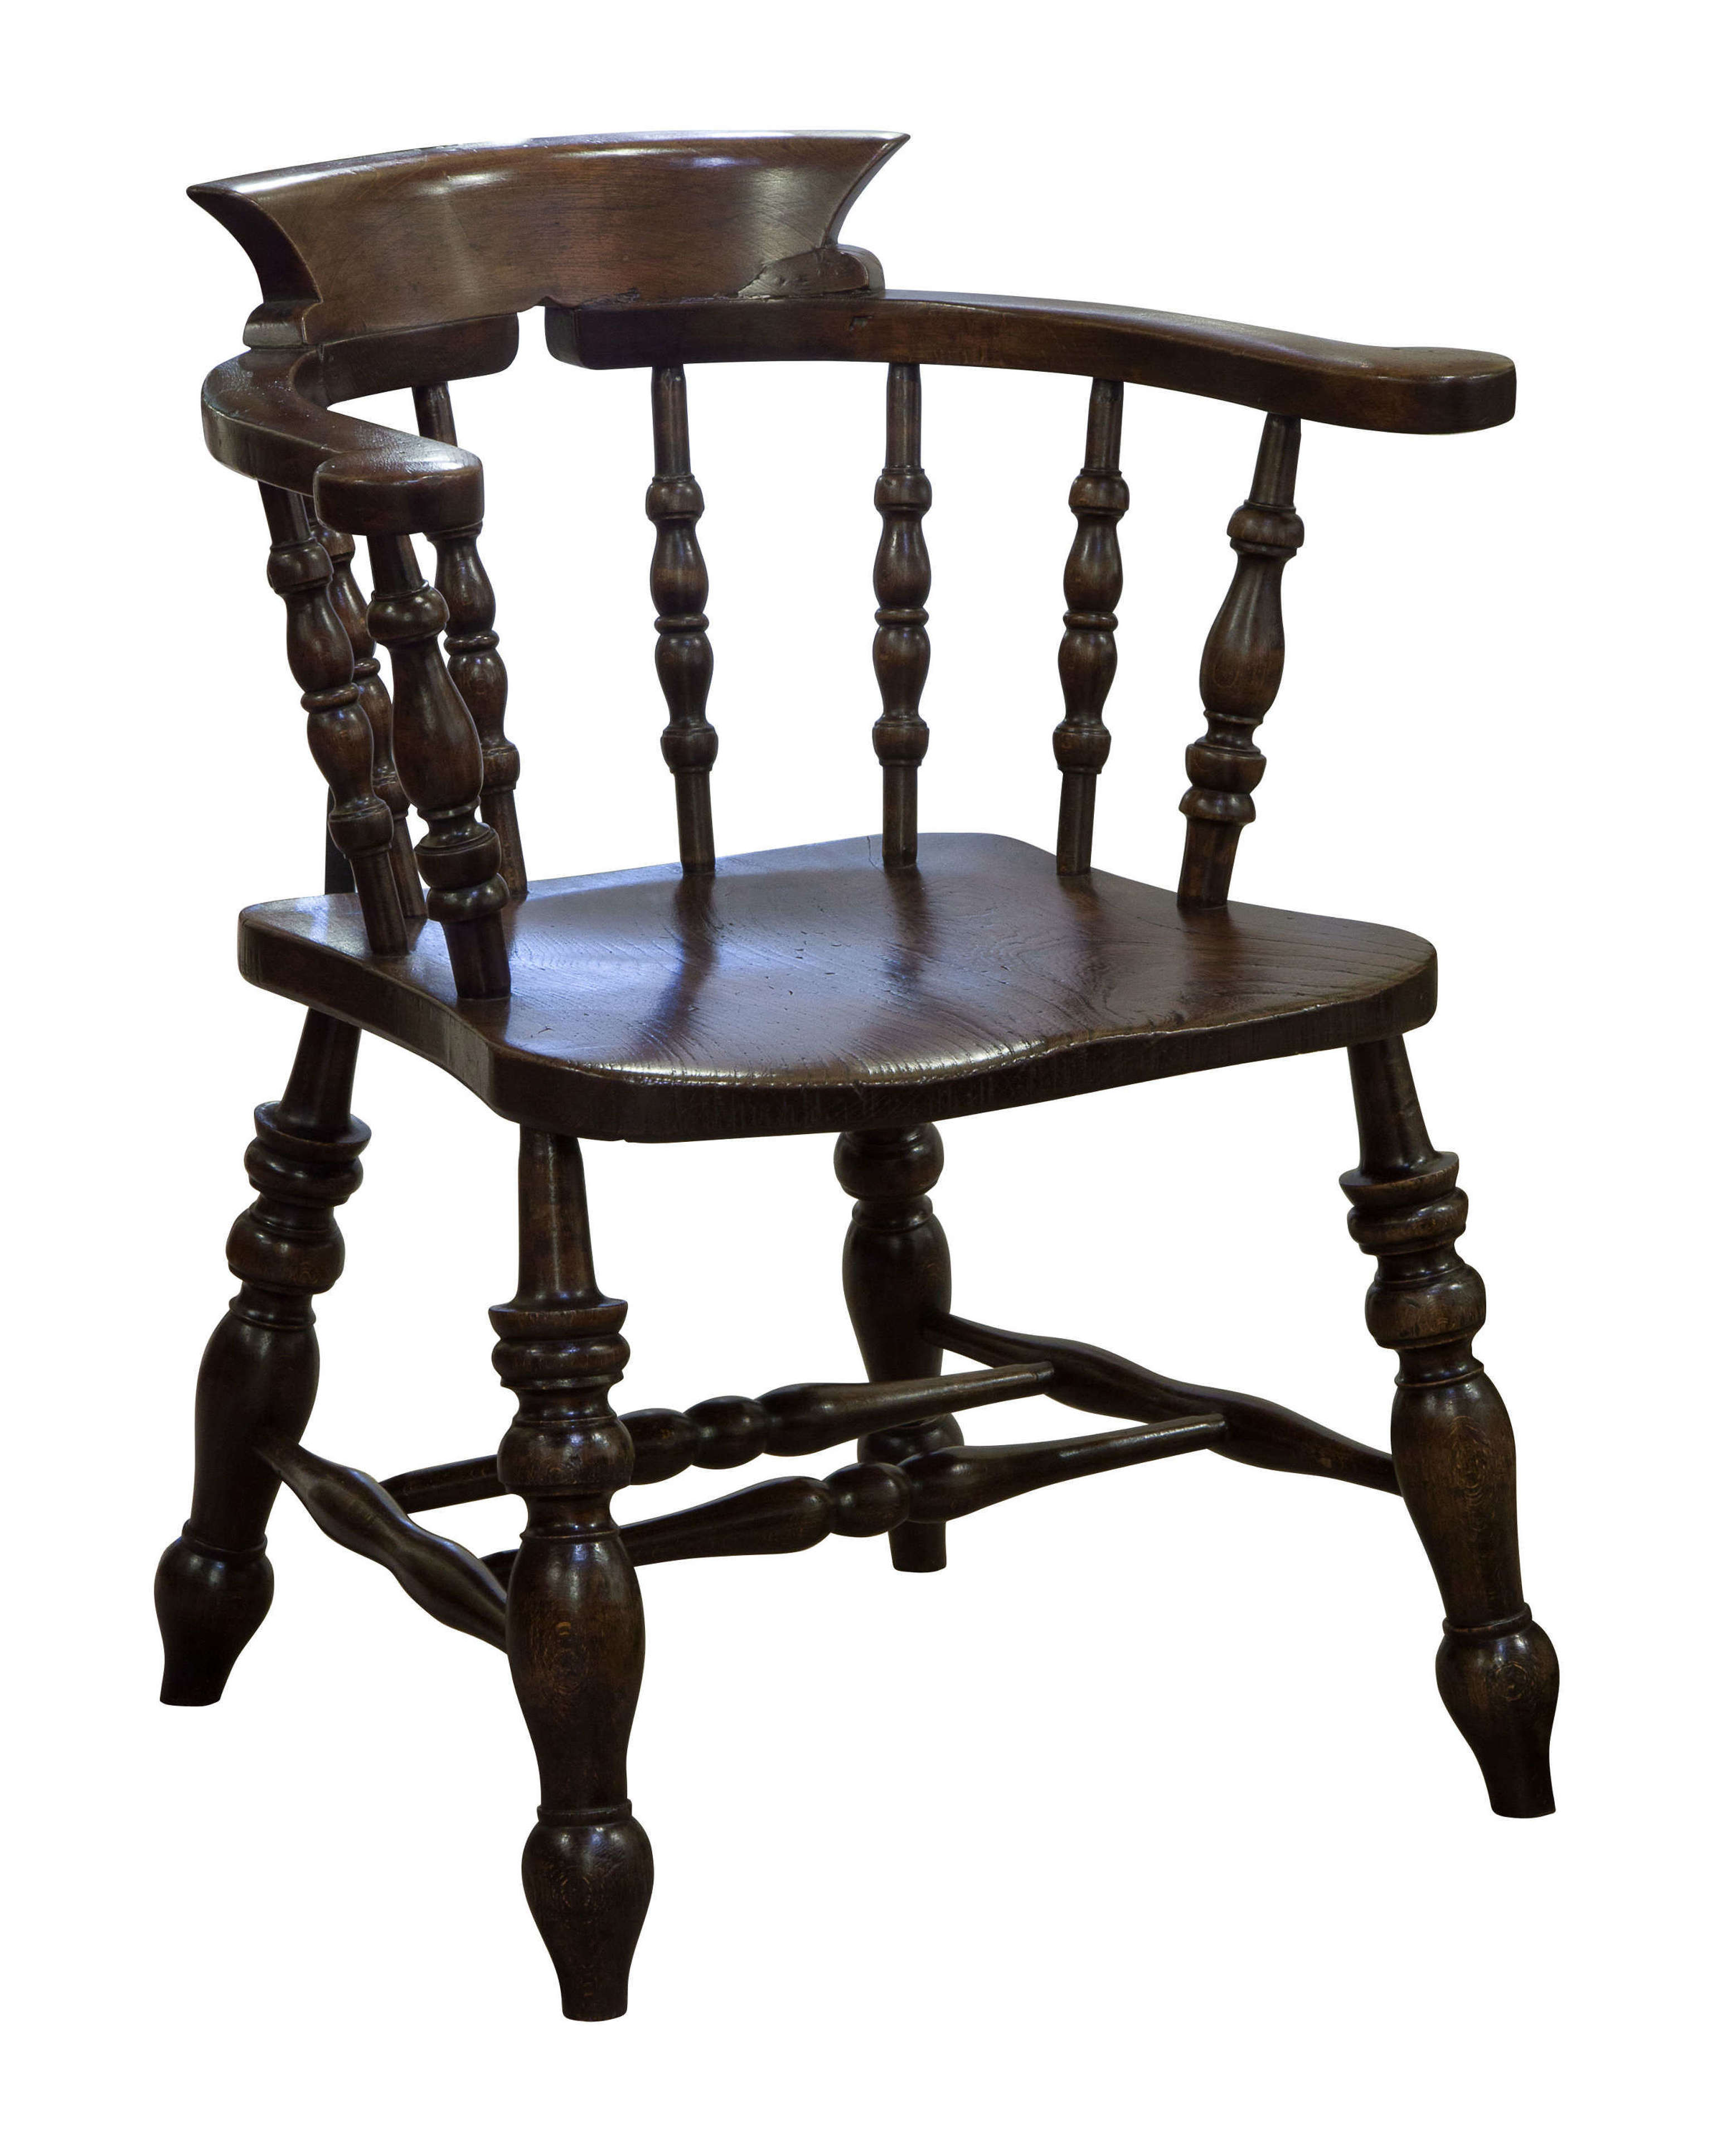 19thCentury Smokers Bow Chair